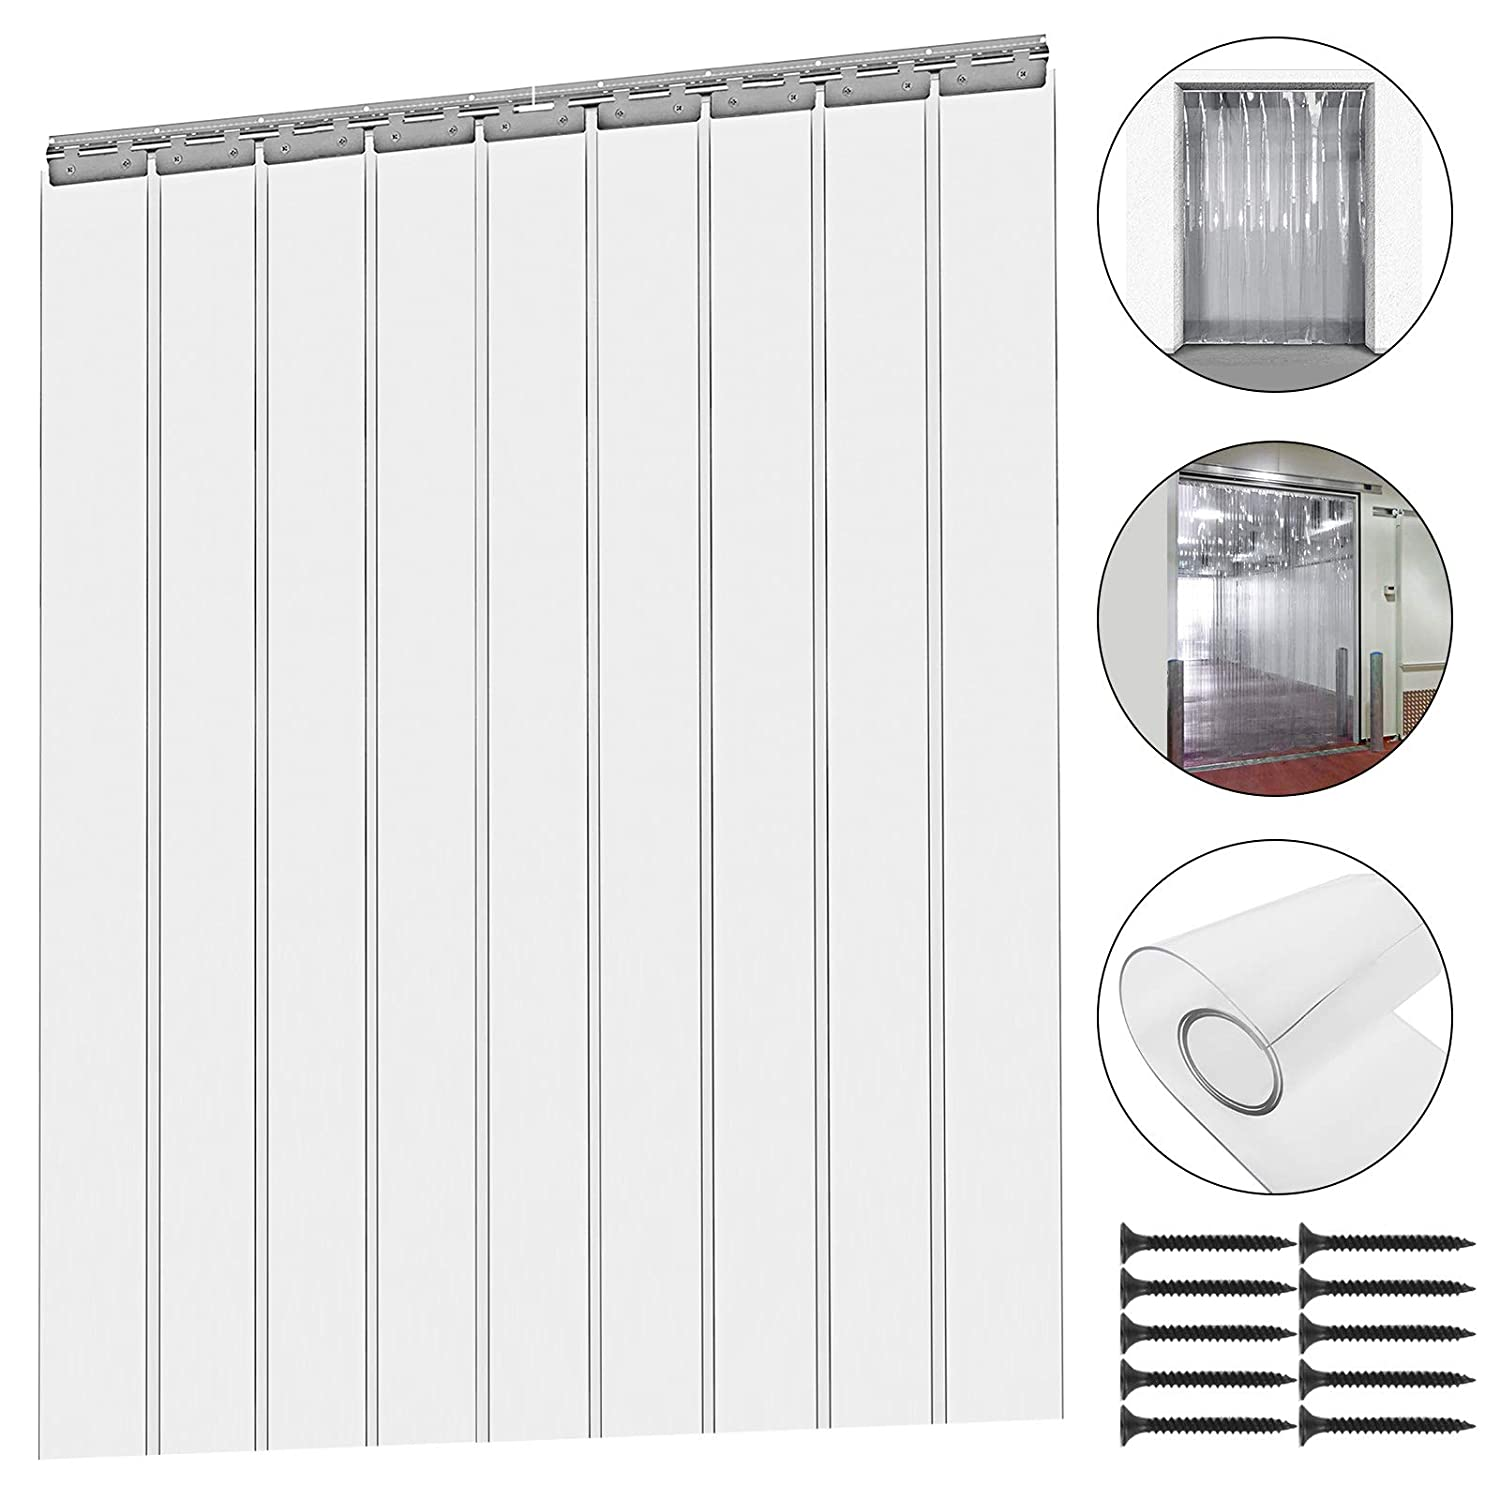 Mophorn 9PCS Plastic Curtain Strips 82.6 Inch Height X 6 Inch Width Strip Door Curtain 0.08 Inch Thickness Clear Curtain Strips with 50% Overlap for 3' X 7' Doors